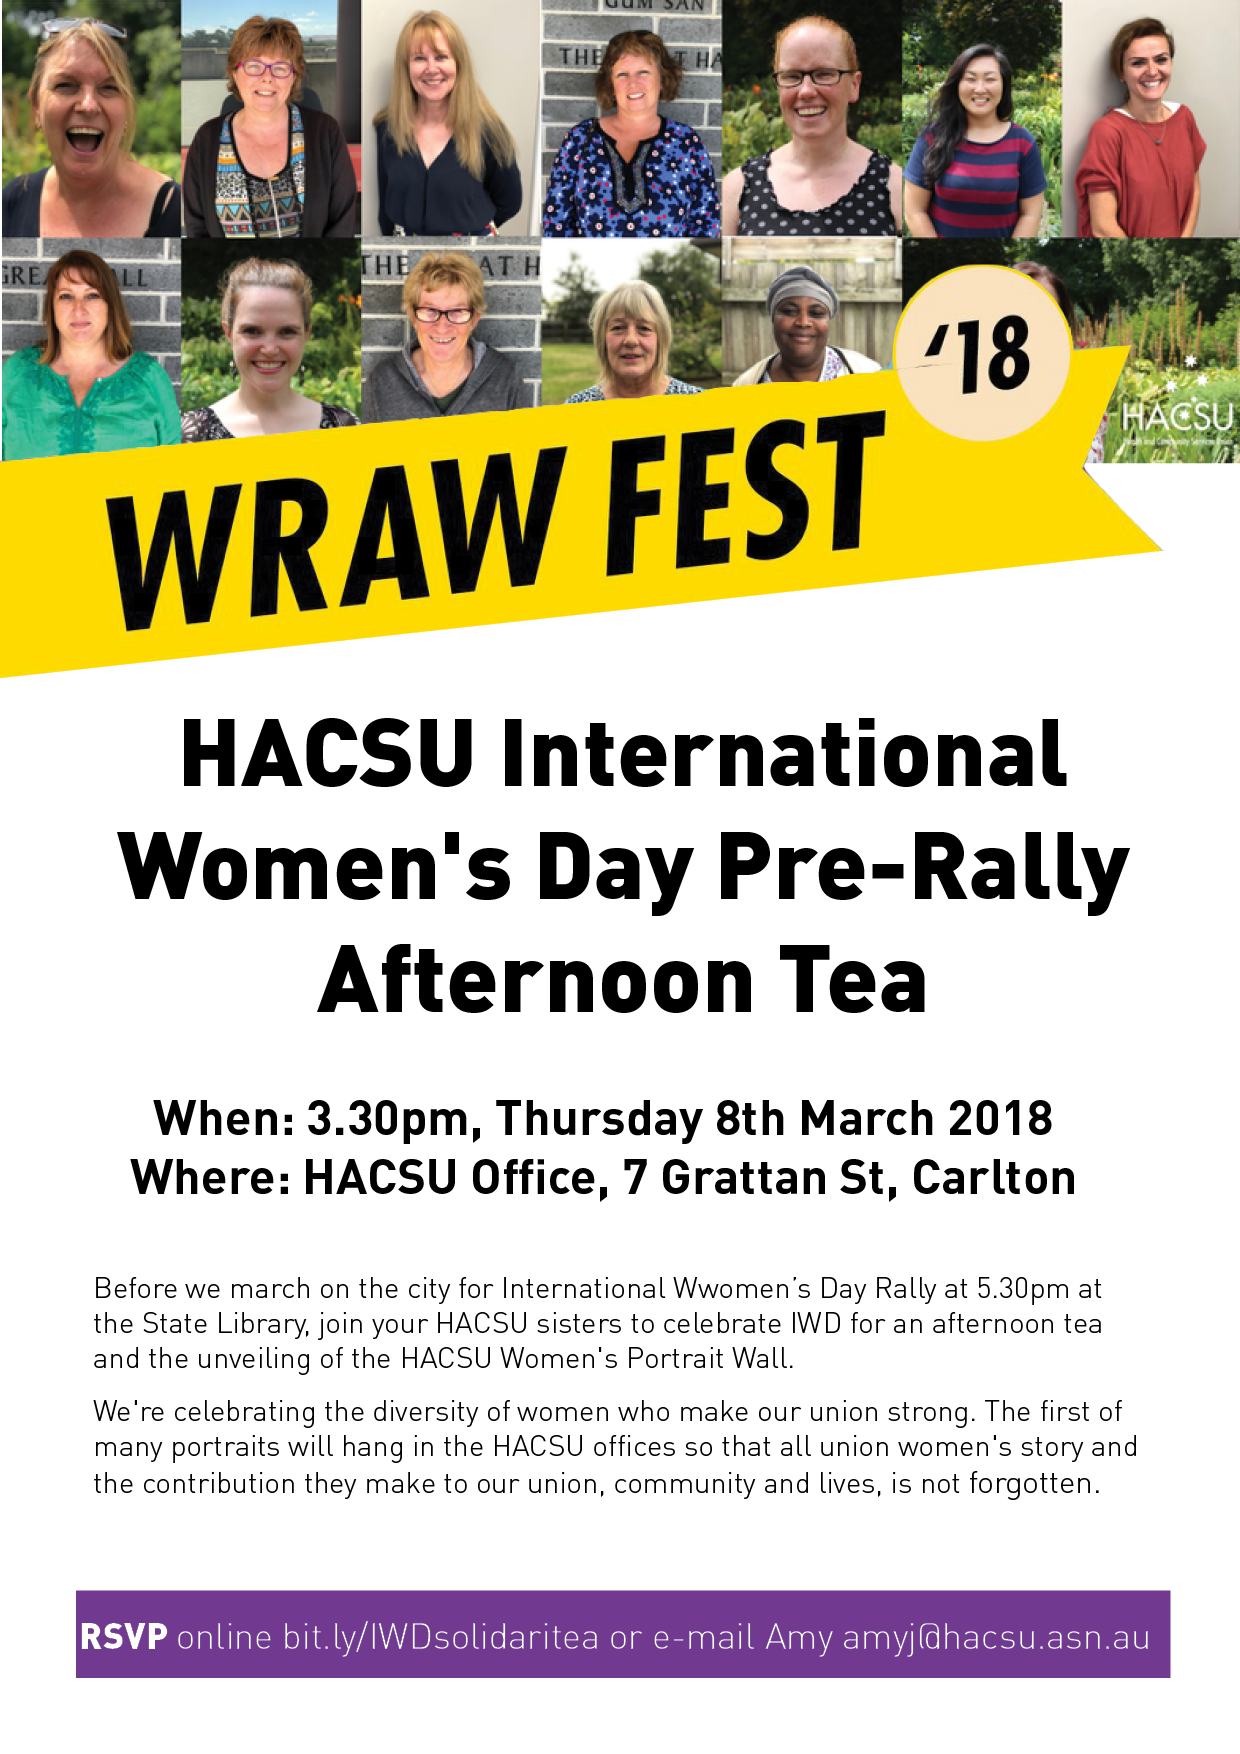 iwd afternoon tea flyer